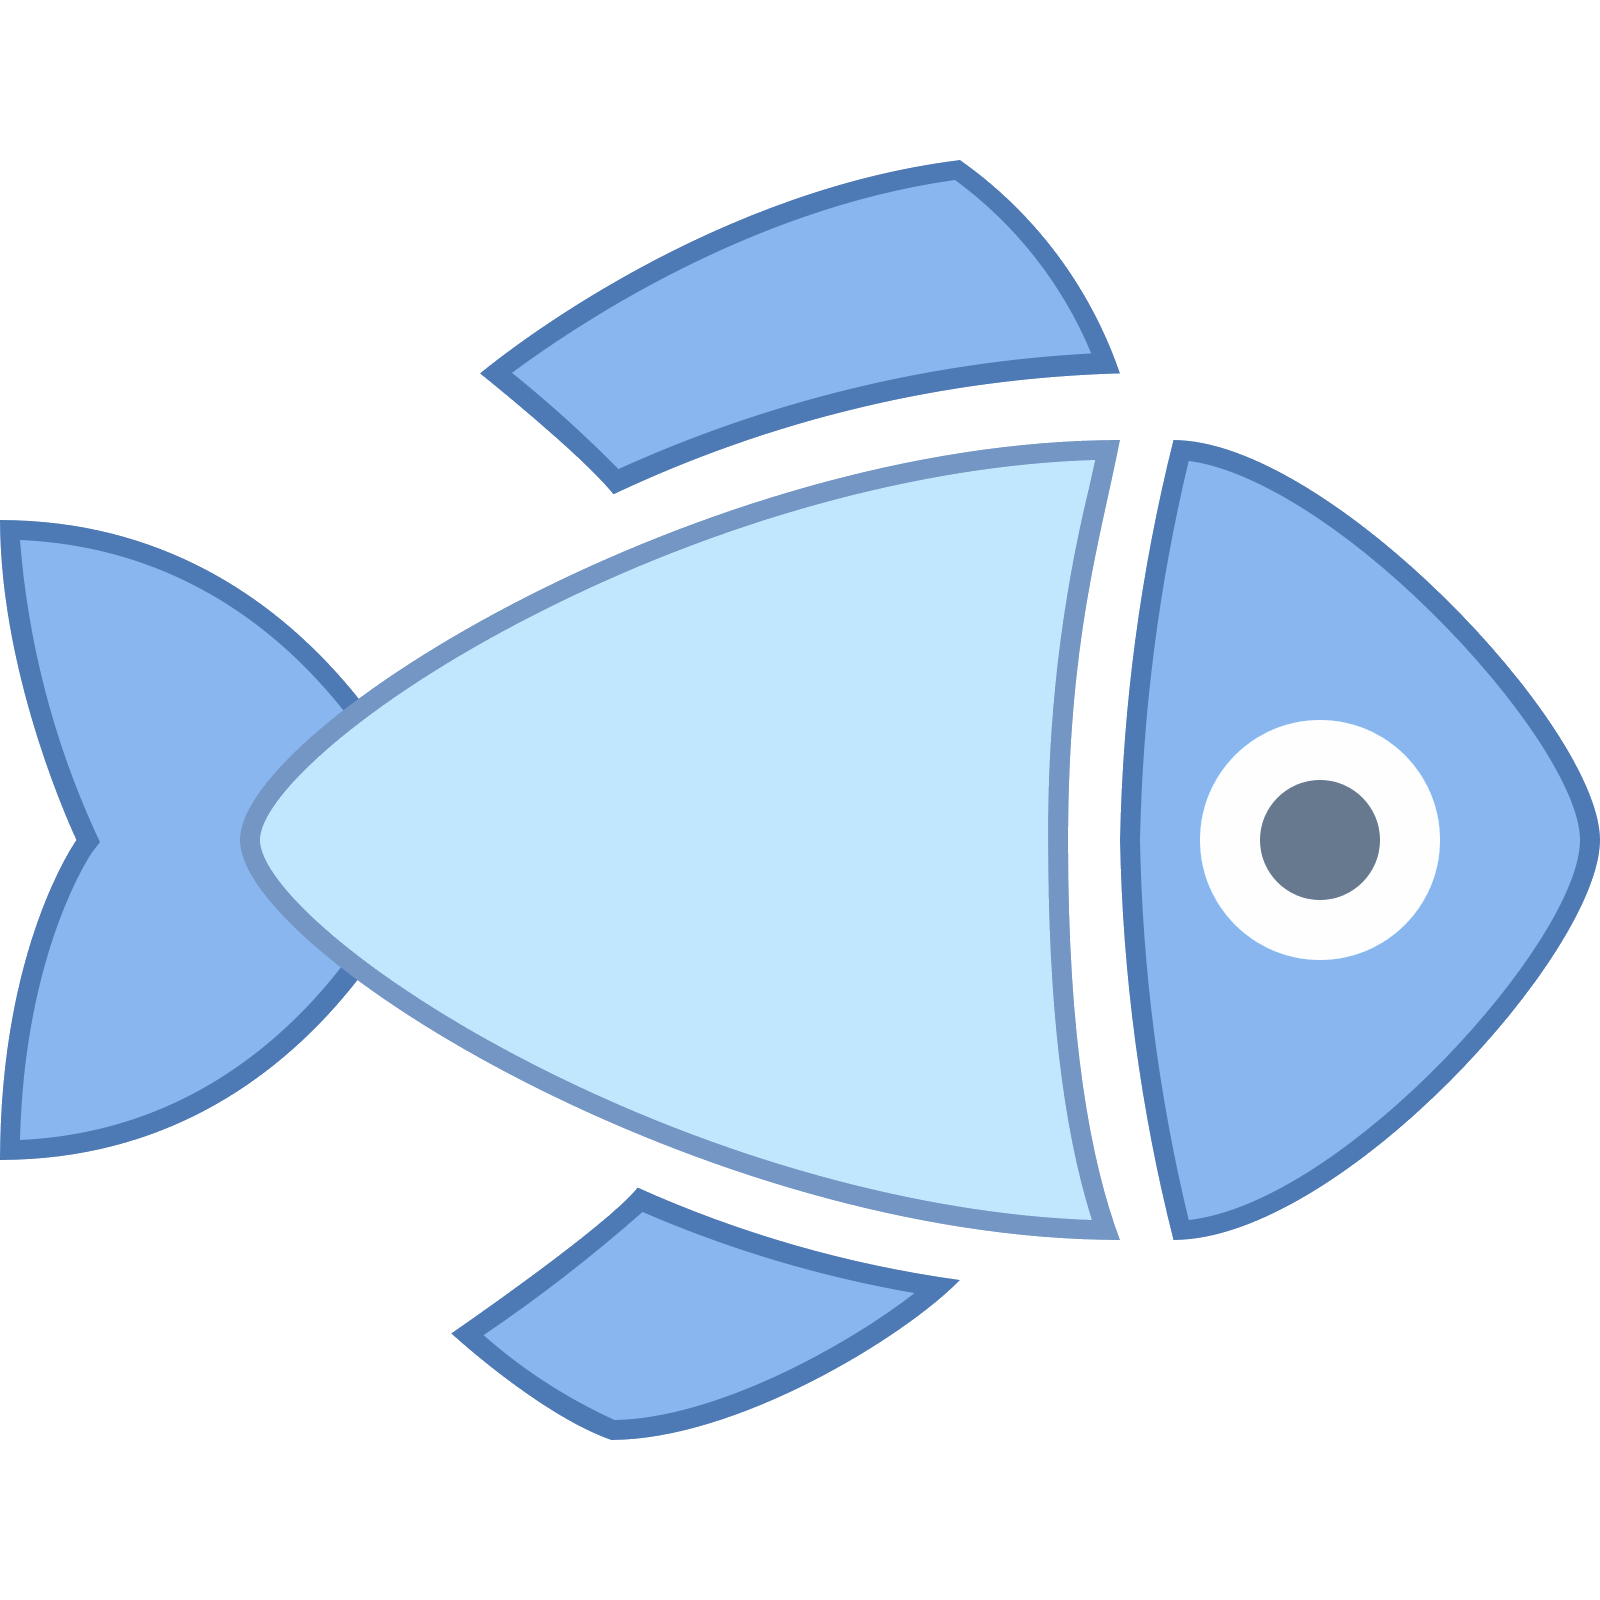 Free download clipart fish banner transparent library Dressed Fish Icon - free download, PNG and vector banner transparent library